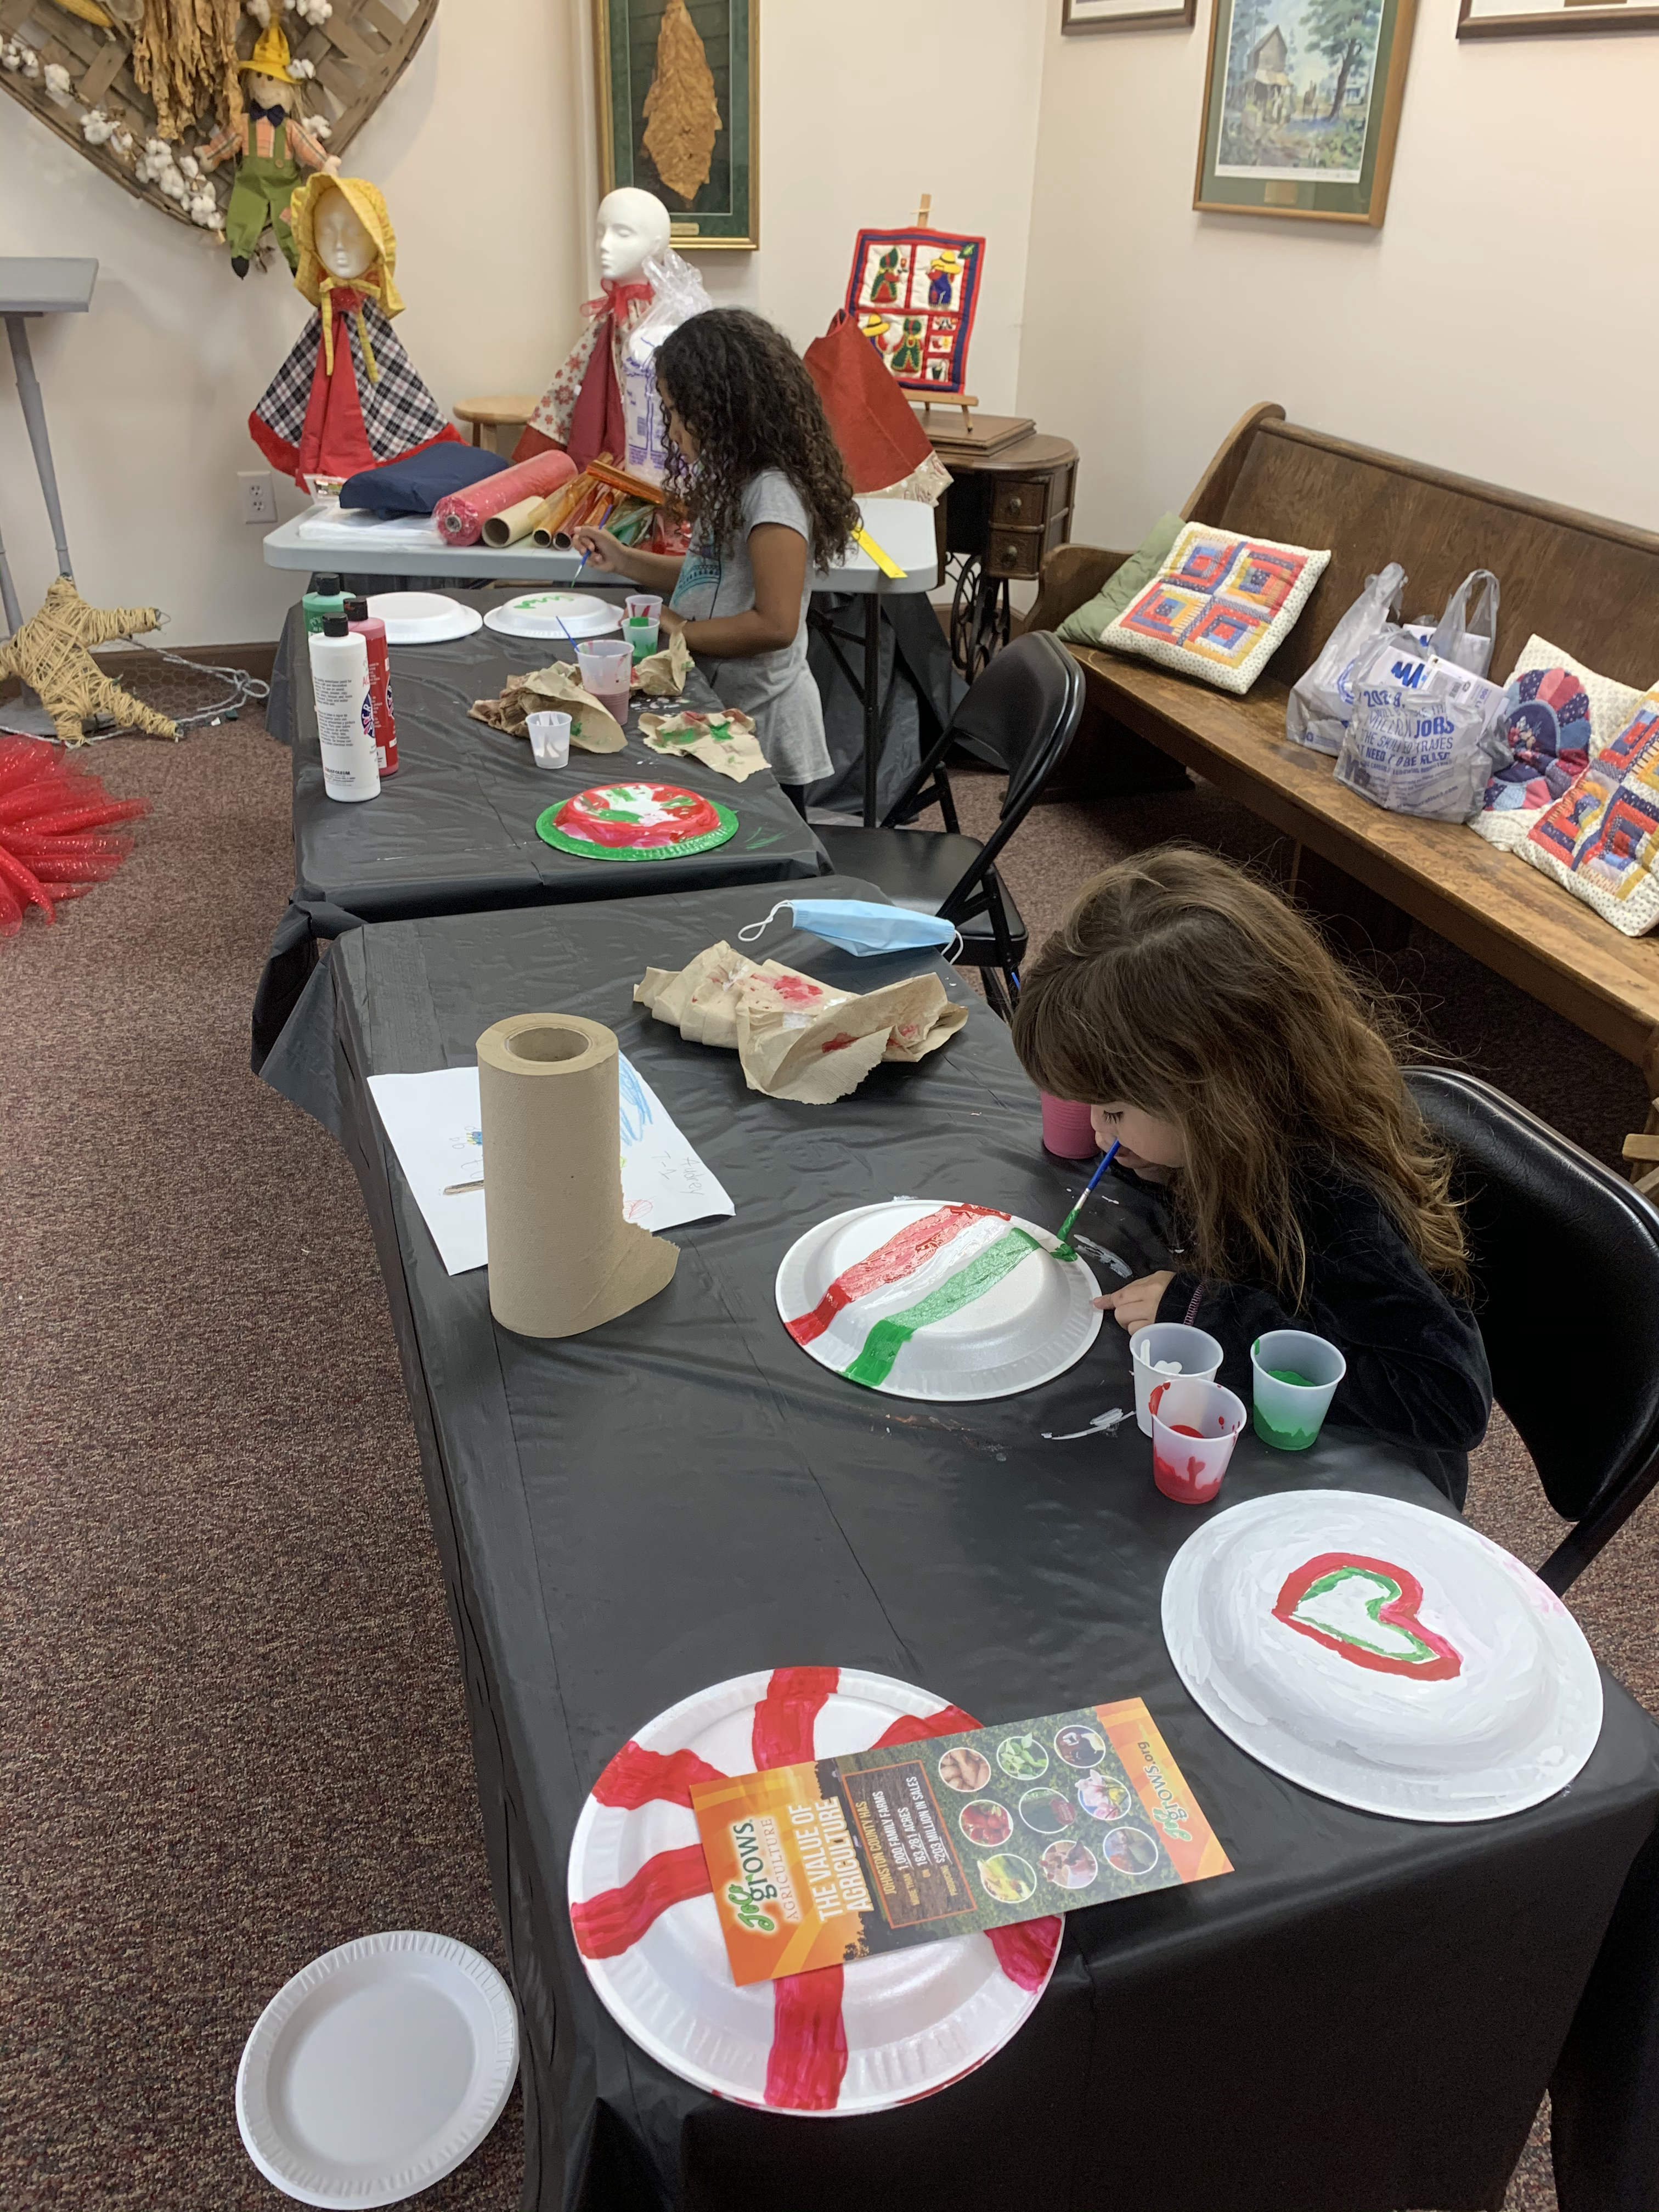 Two little girls painting the items that were part of the candy decorations for the gingerbread hous